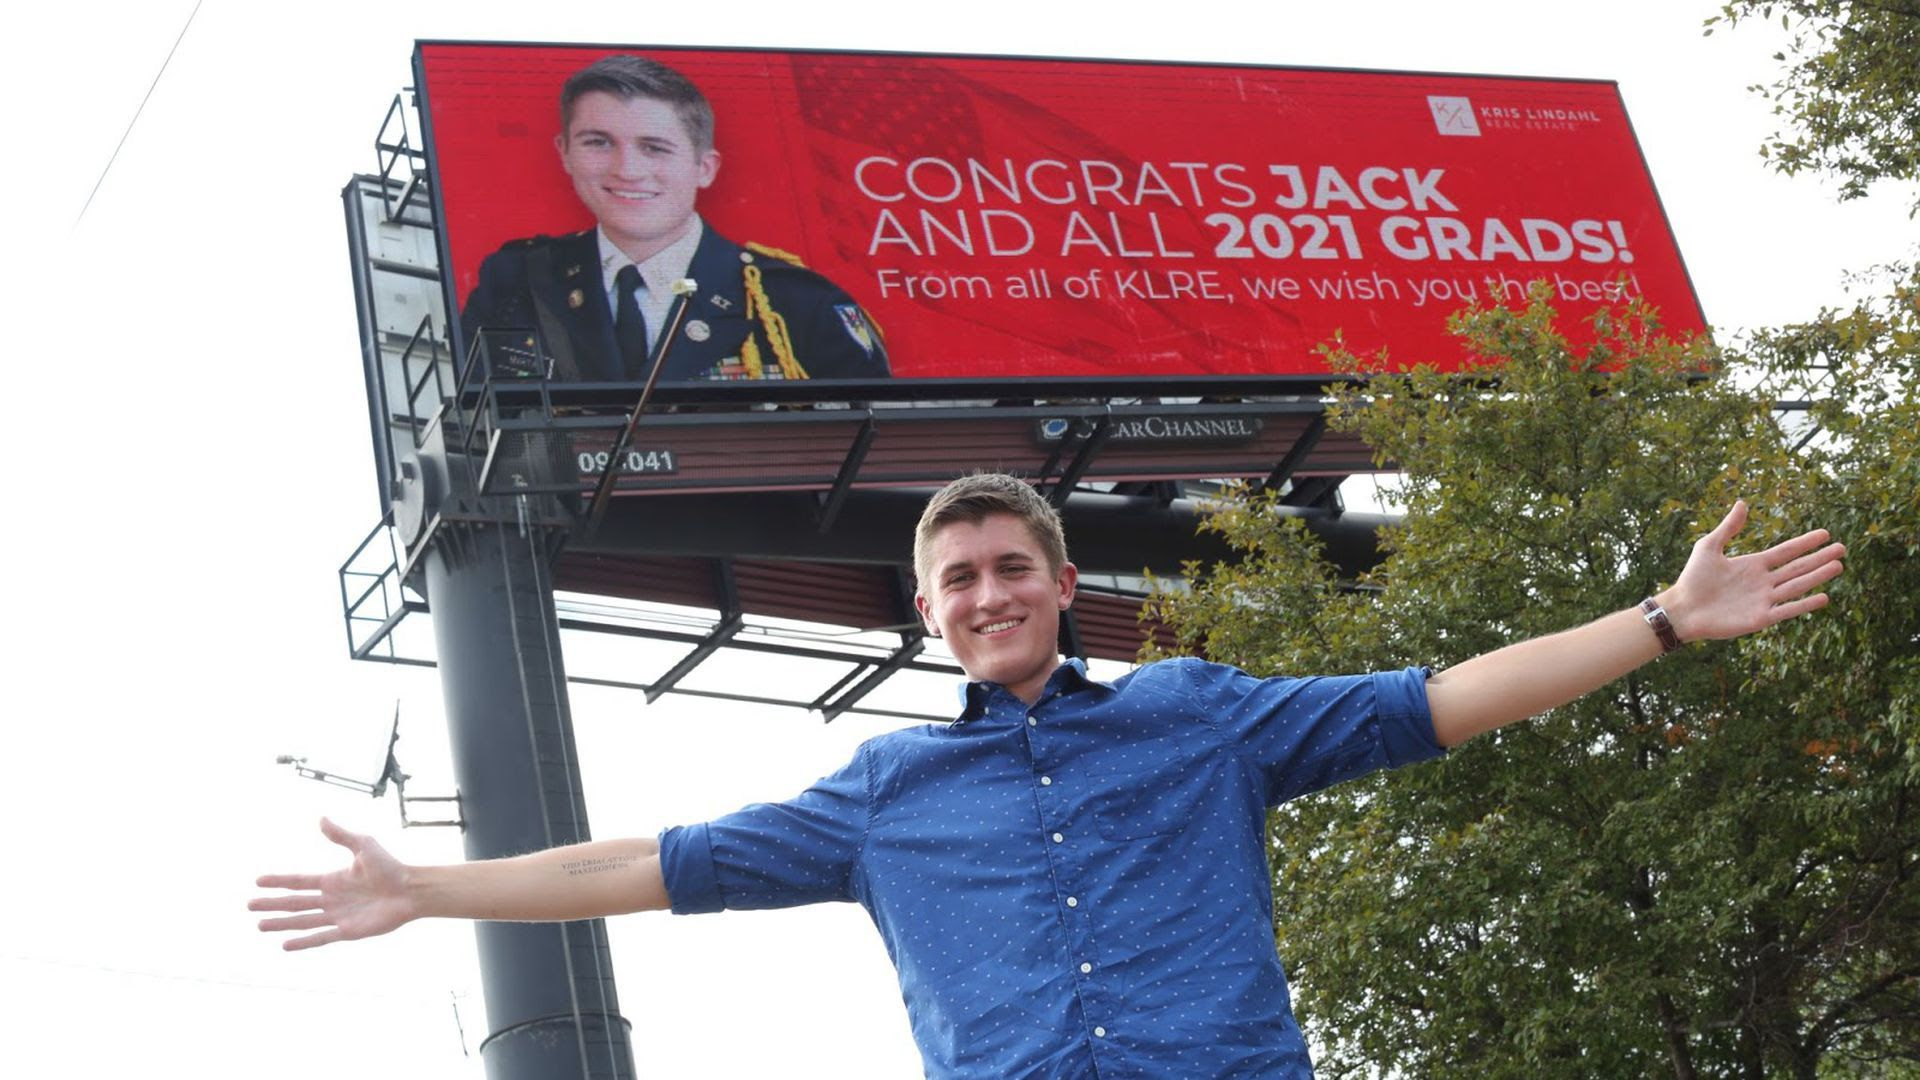 A graduating high school senior stands with his arms outstretched by a billboard celebrating his graduation set up by Kris Lindahl's real estate group.